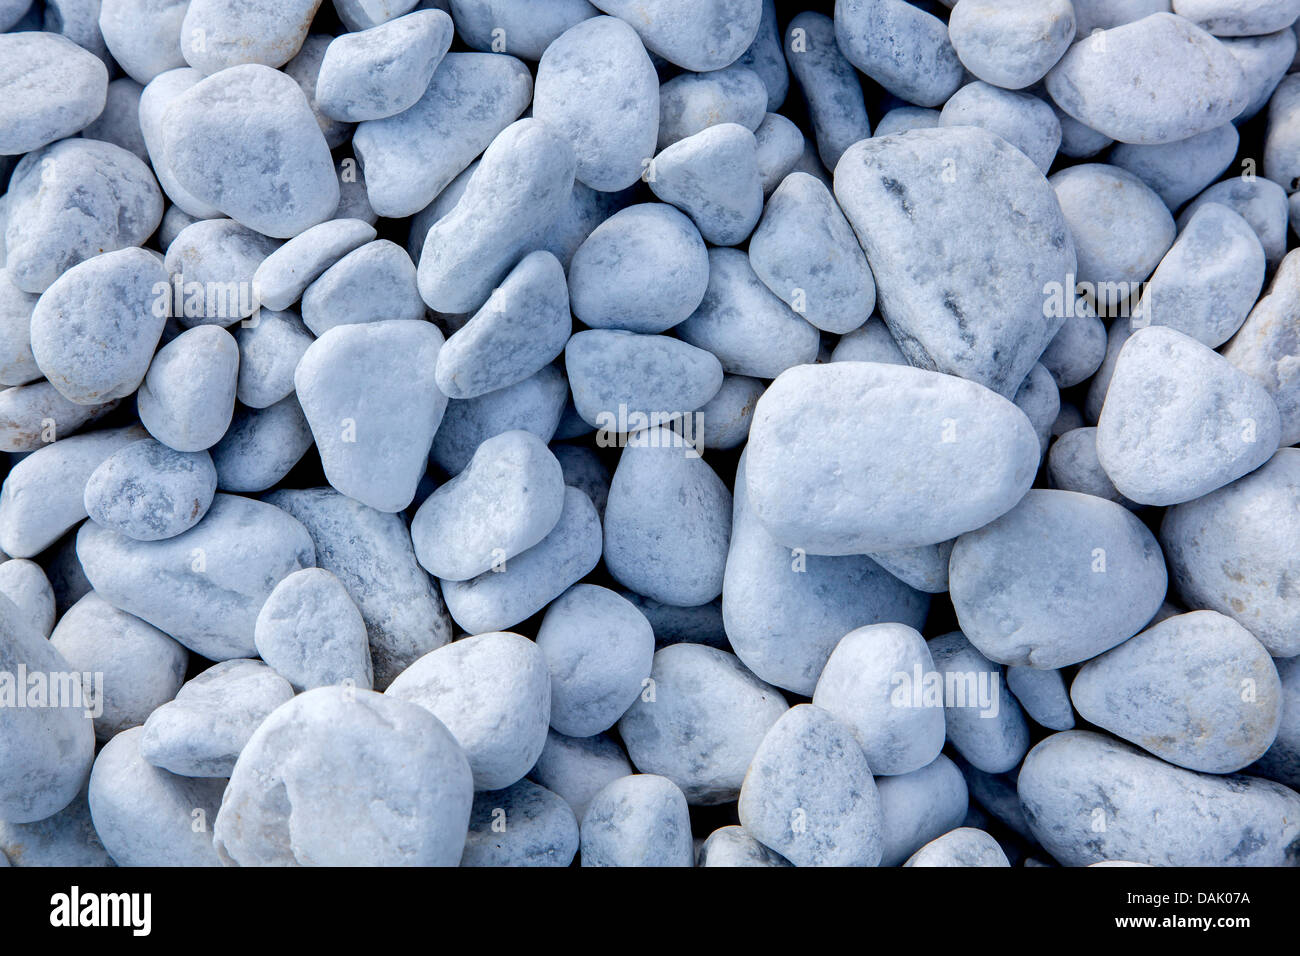 Carrara marble gravel, pebbles - Stock Image